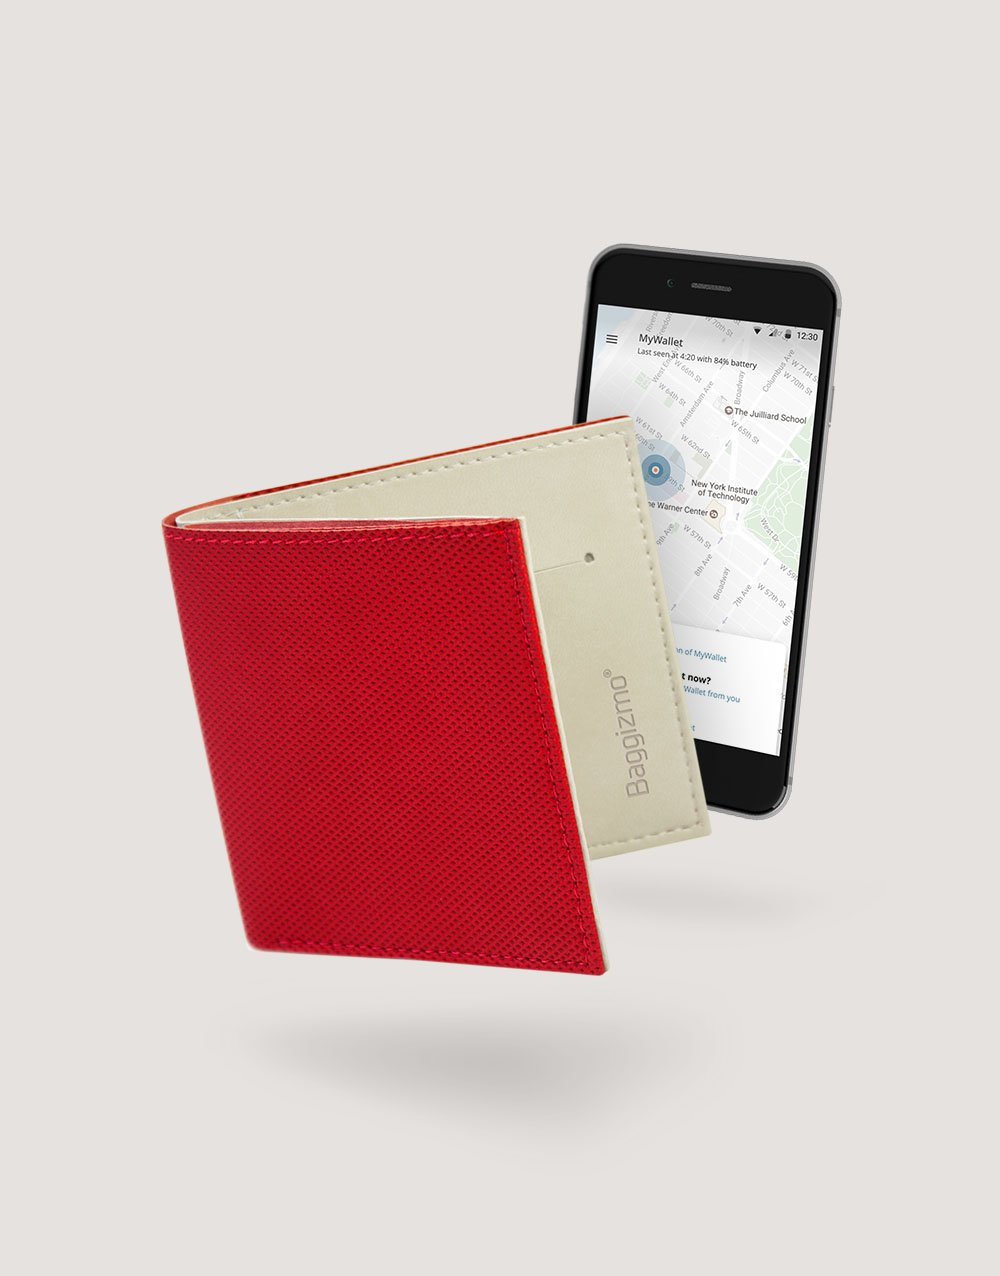 Baggizmo Wiseward smart wallet in cardinal red color connected to Baggizmo app